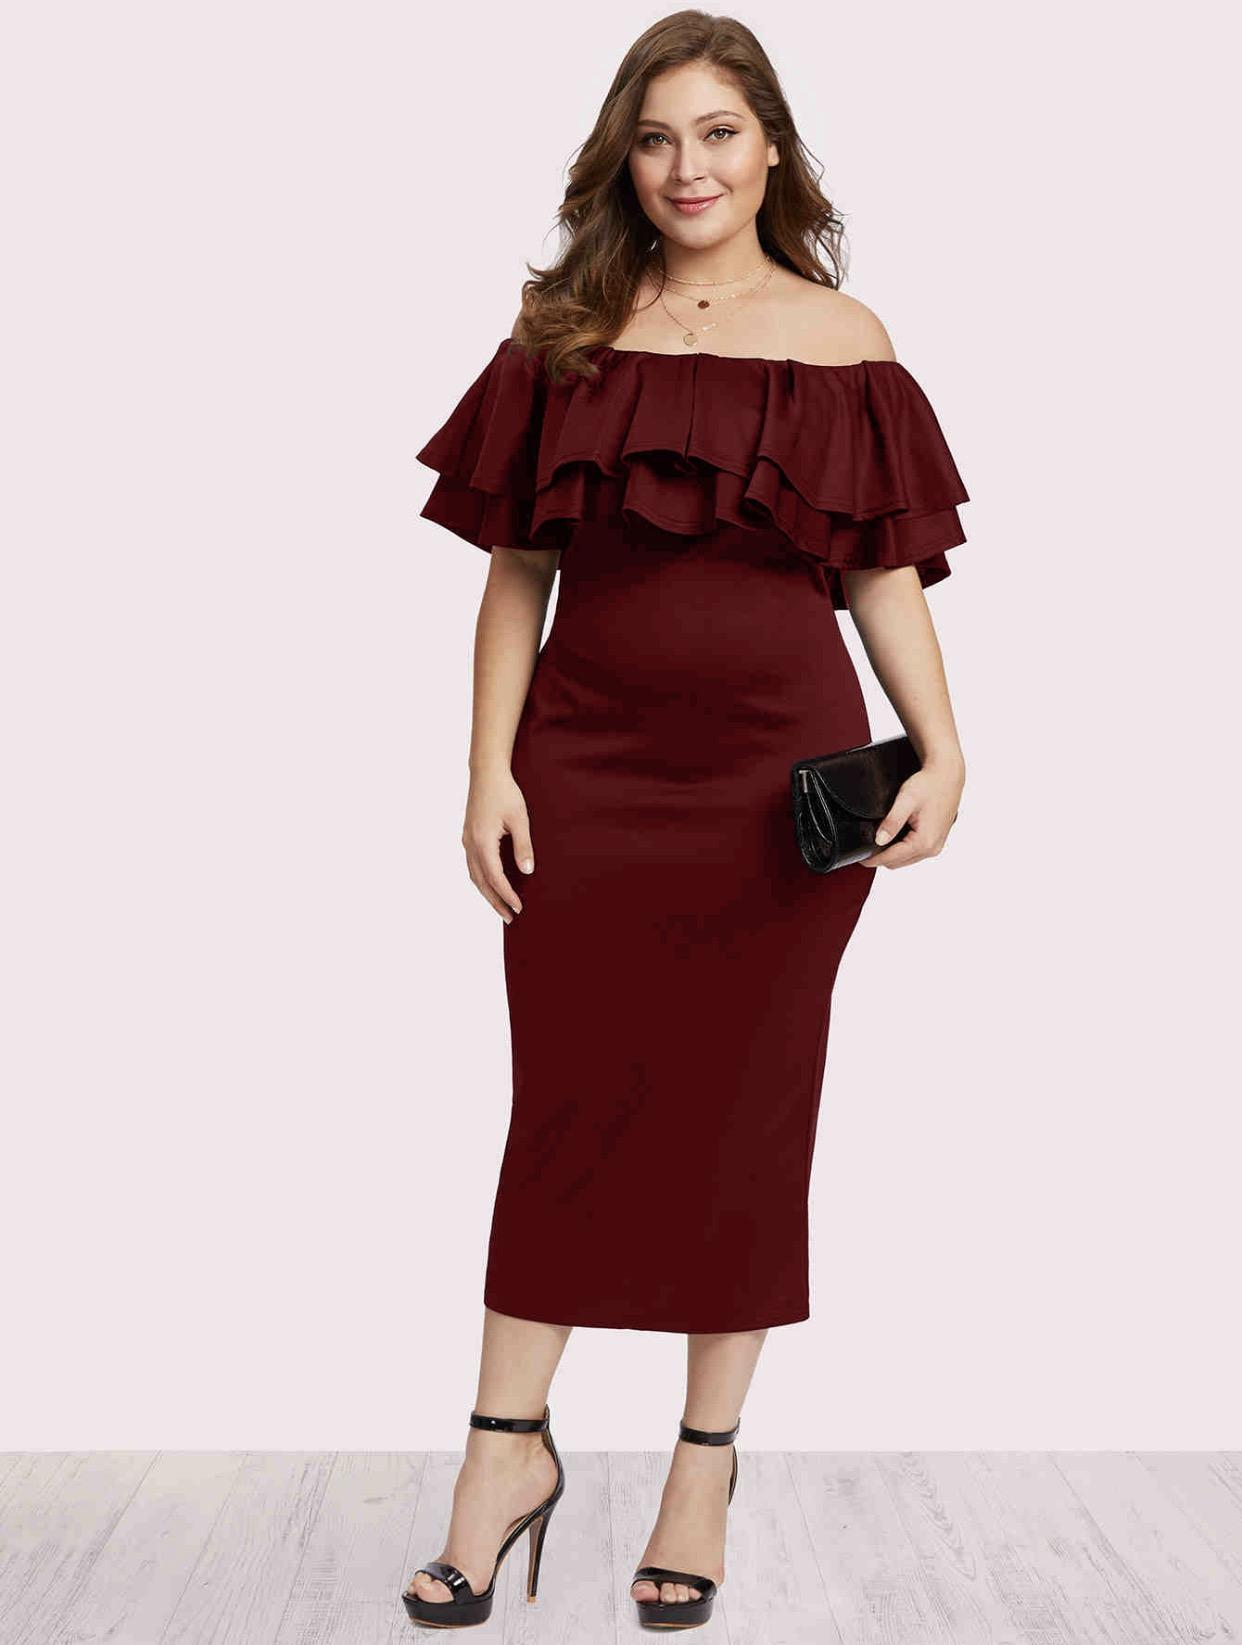 647dd478f2fd 43392 items found in Dresses. A1969 Off the Shoulder 2-layer Plus Size Dress  L XL (XXL)